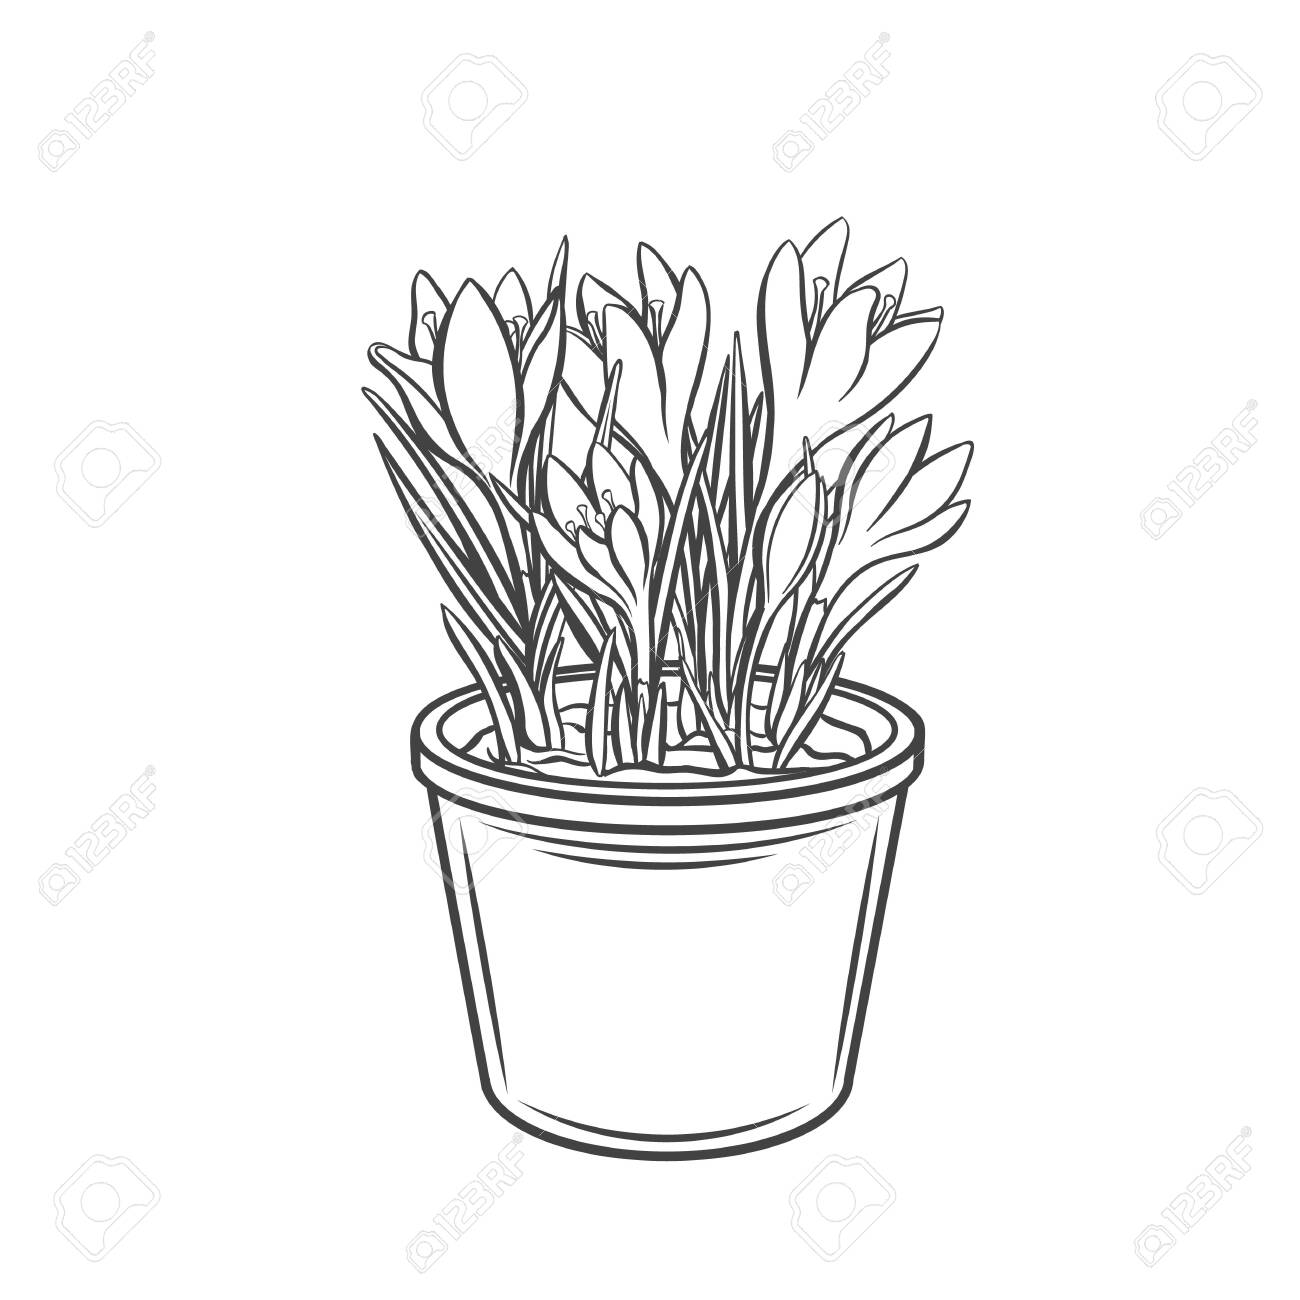 Crocus In A Pot Outline Icon Drawing Garden Flowers For Gardening Royalty Free Cliparts Vectors And Stock Illustration Image 148571206